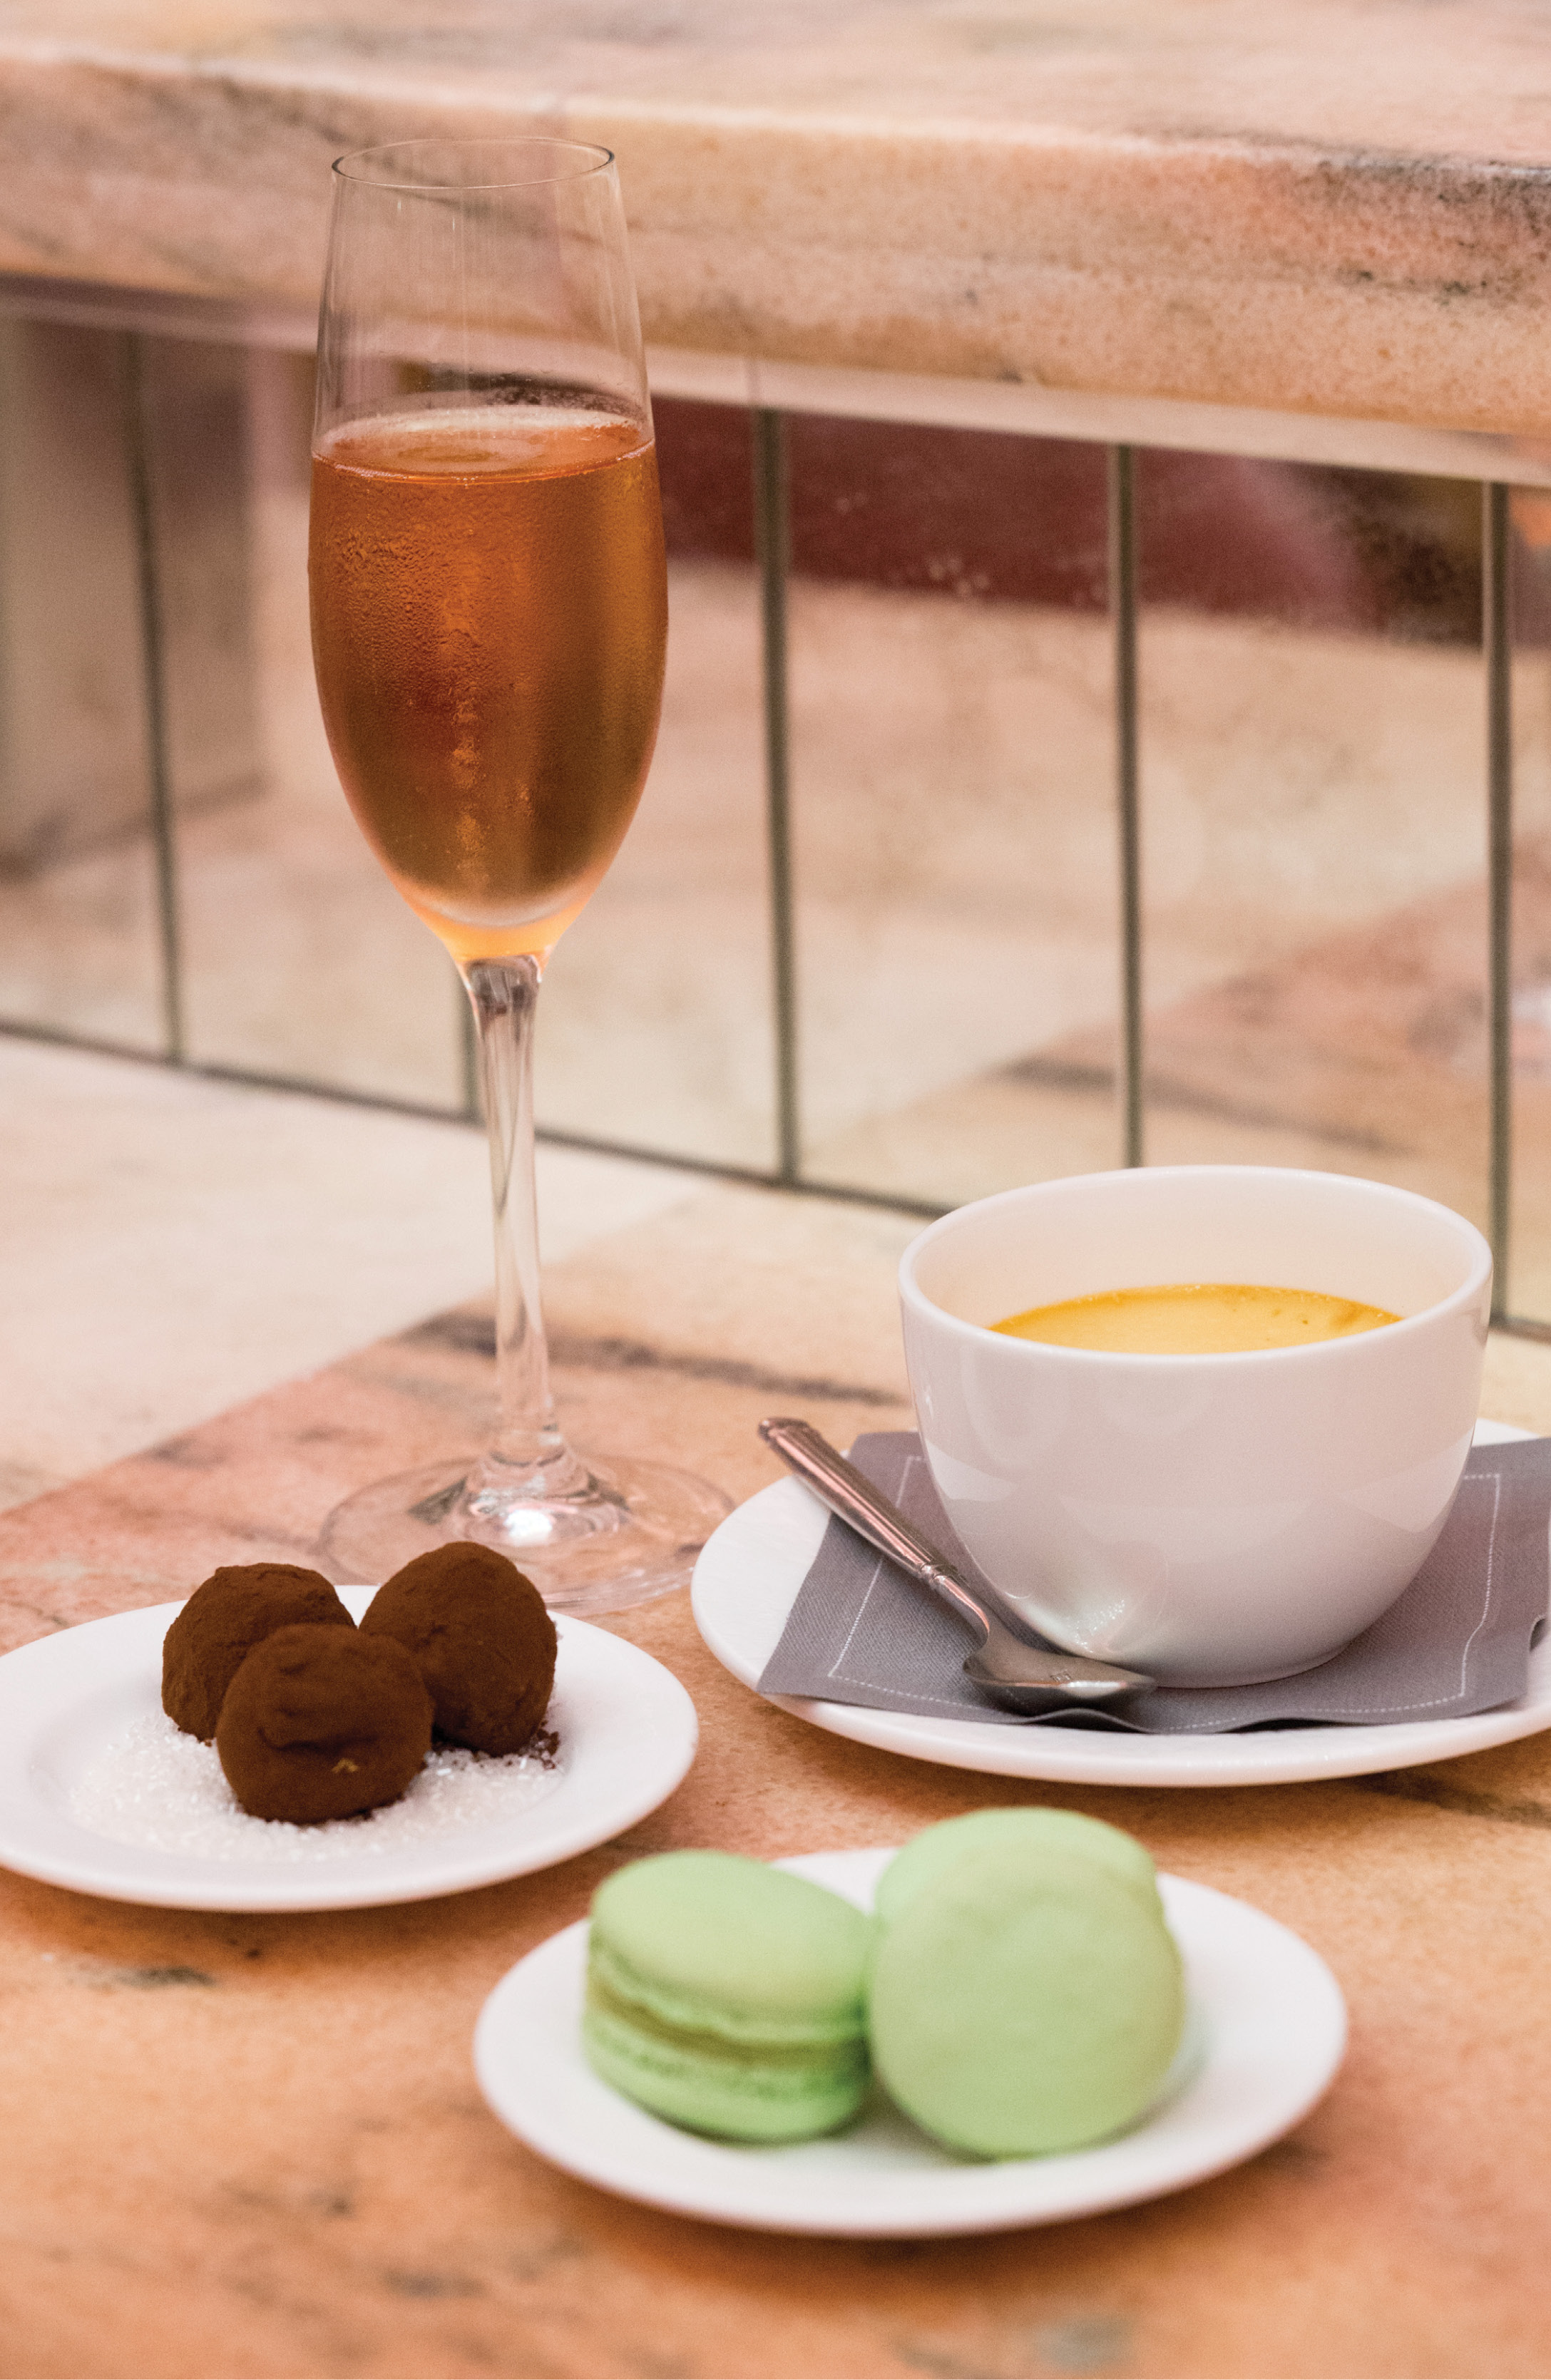 Toast of the Town: Chef Rémy Fünfrock's (inset above) on-menu confections can be enjoyed throughout Hotel Bennett. At champagne bar Camellias, a glass of sparkling rosé makes for a perfect pairing with his sweets.